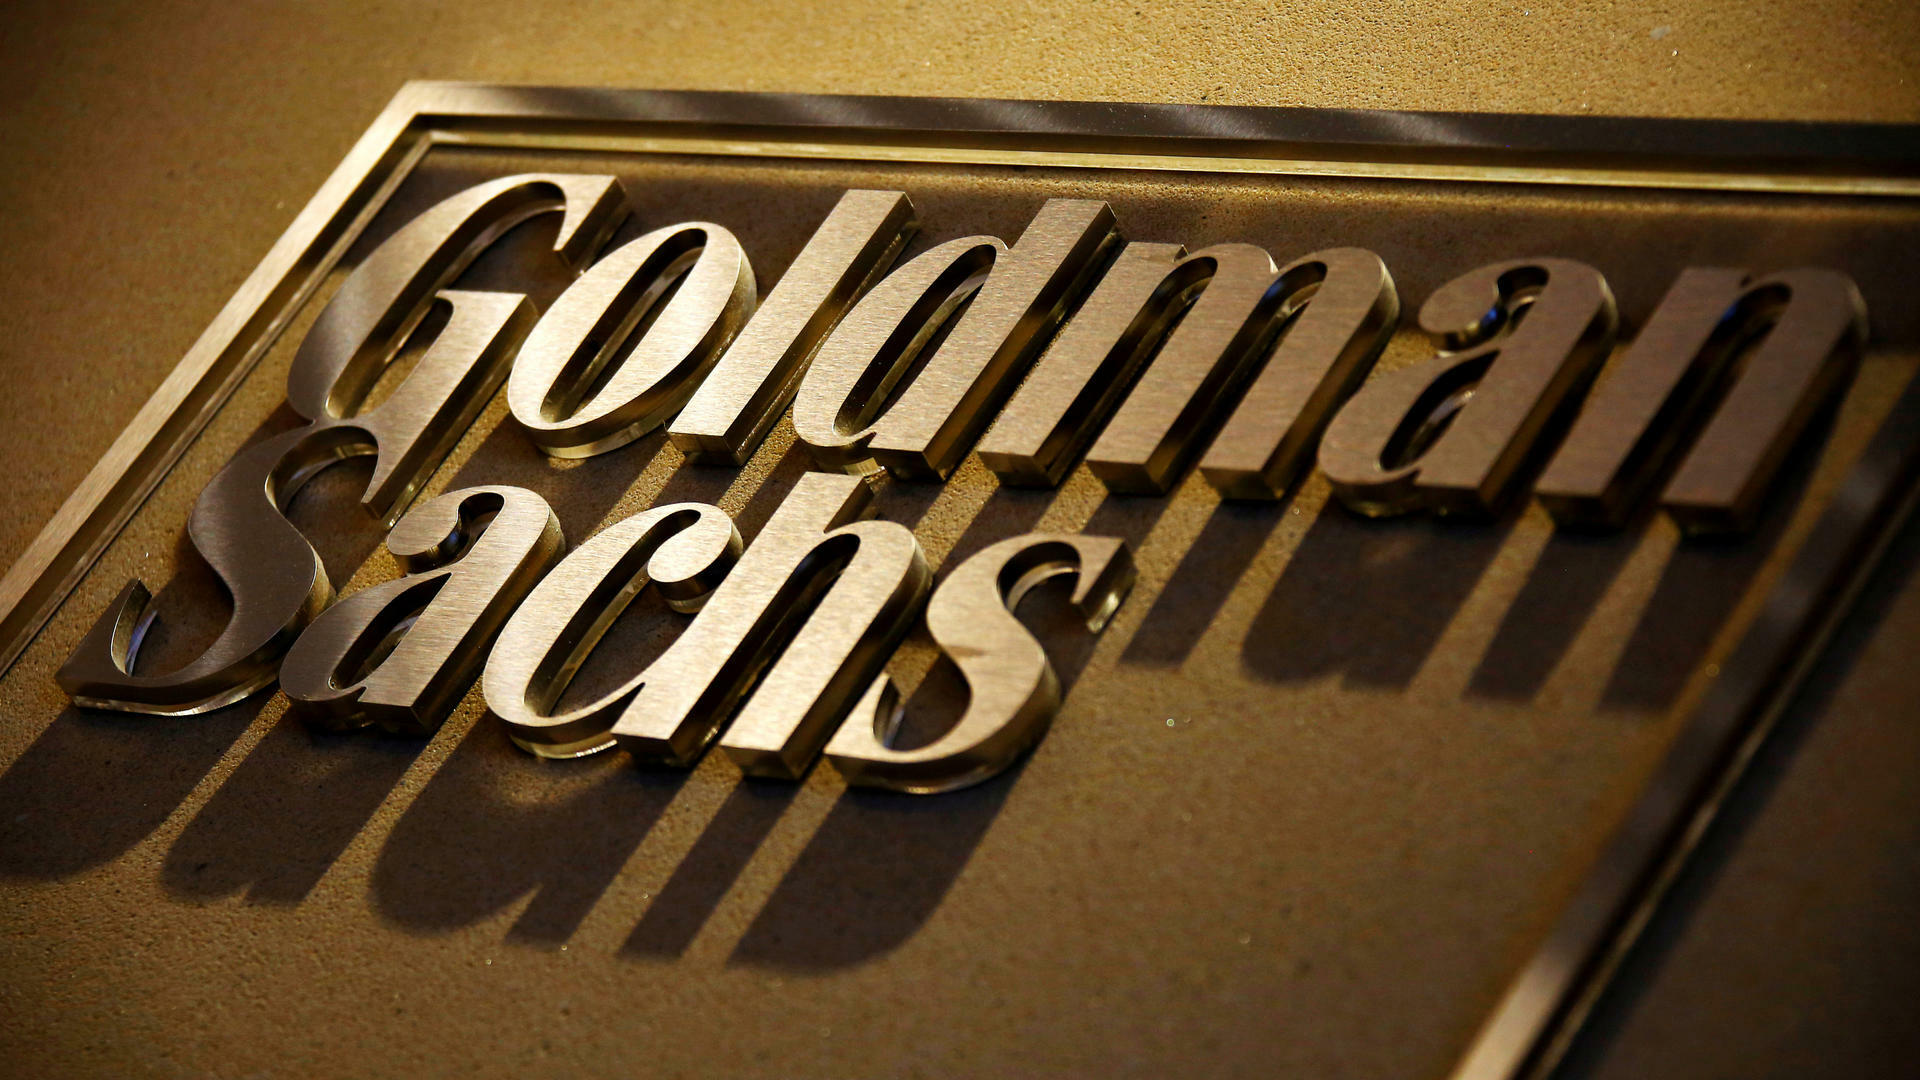 Goldman Sachs Quelle: REUTERS